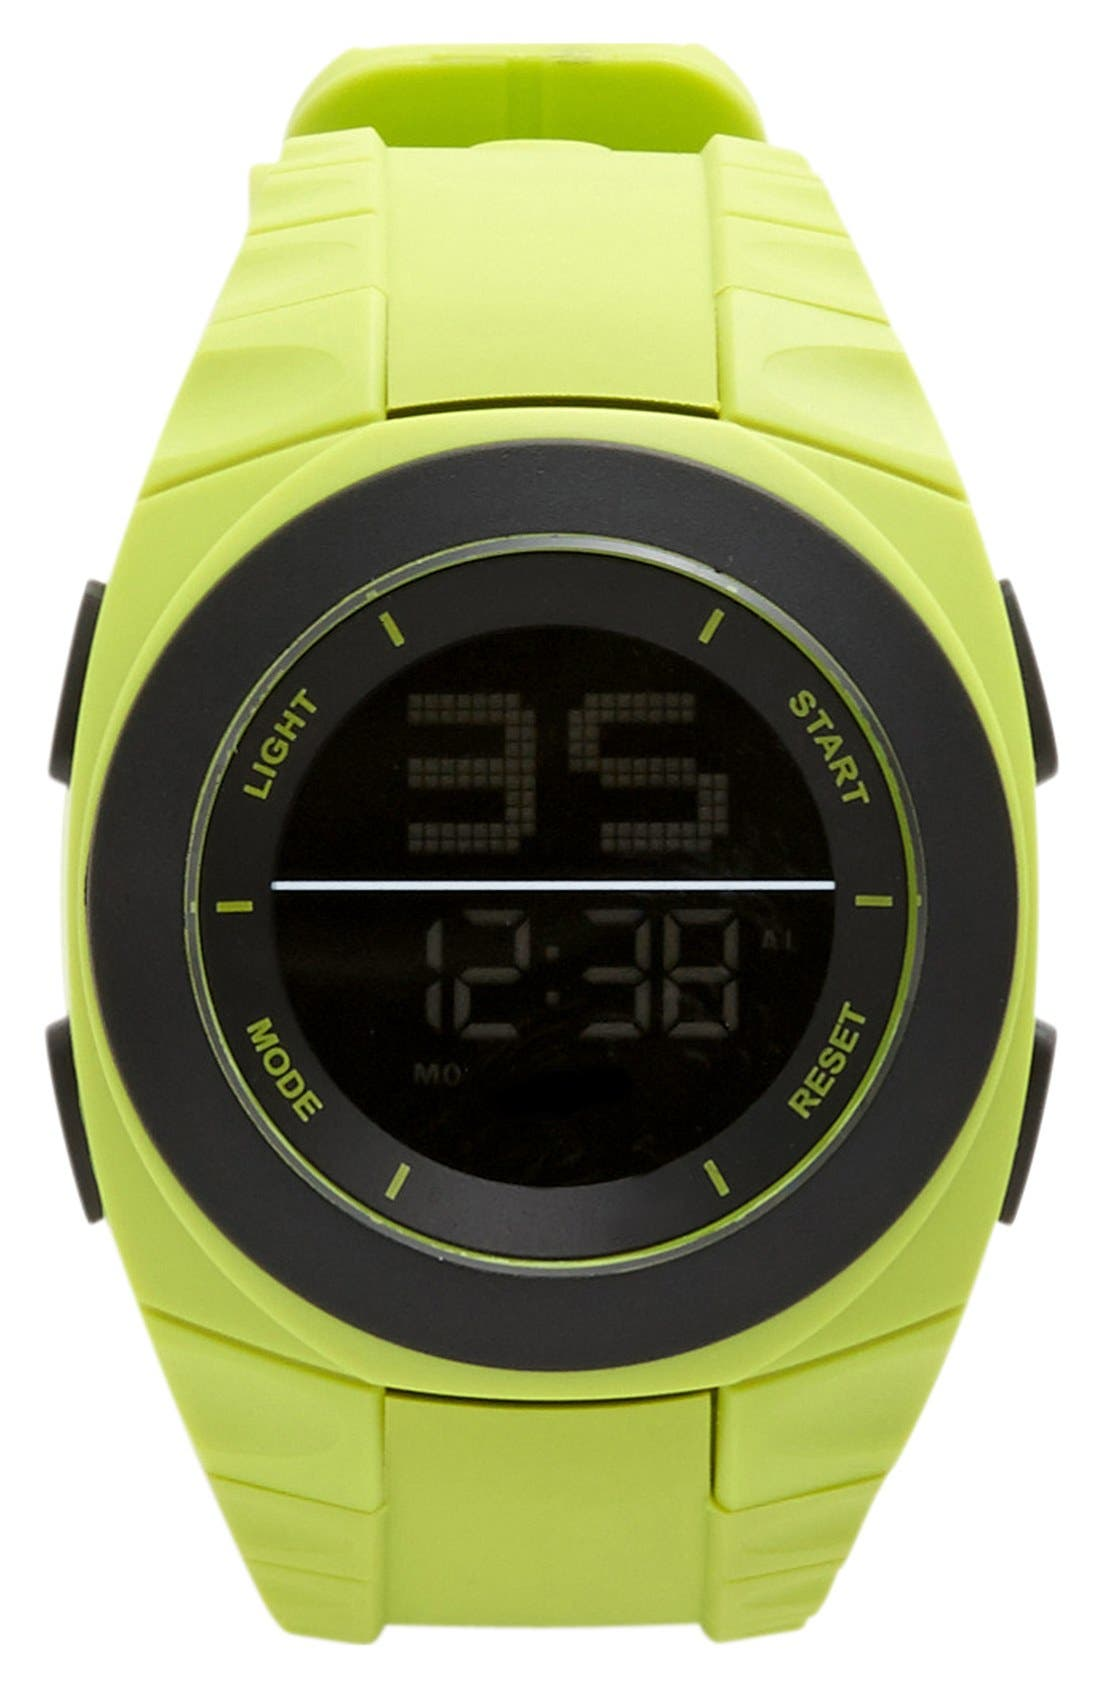 Main Image - ACCUTIME Digital Silicone Strap Watch, 45mm